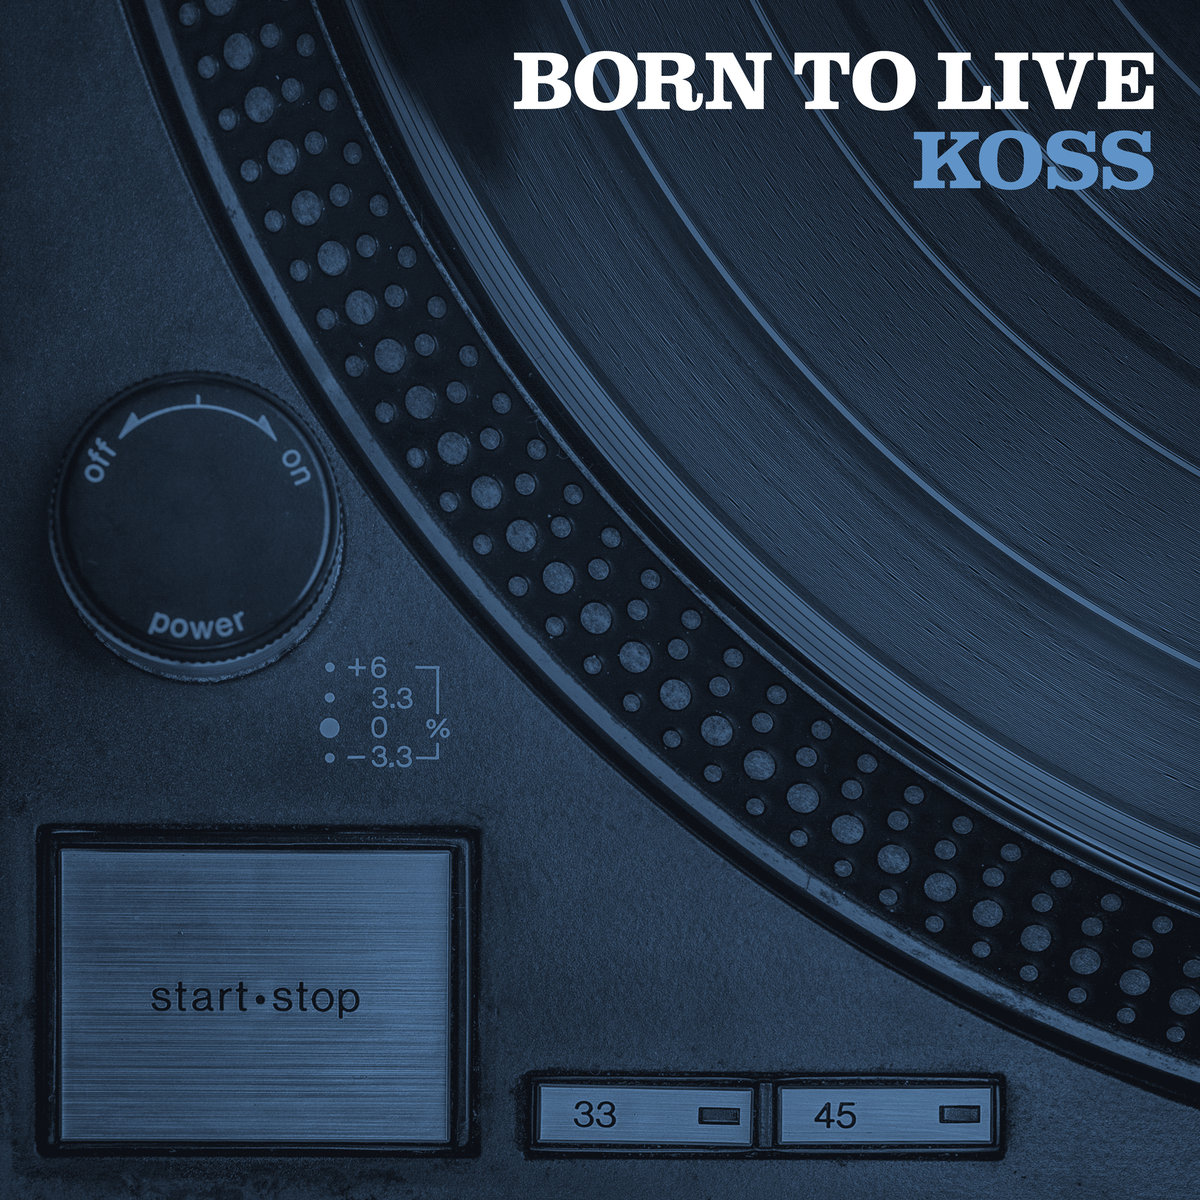 Born_to_live